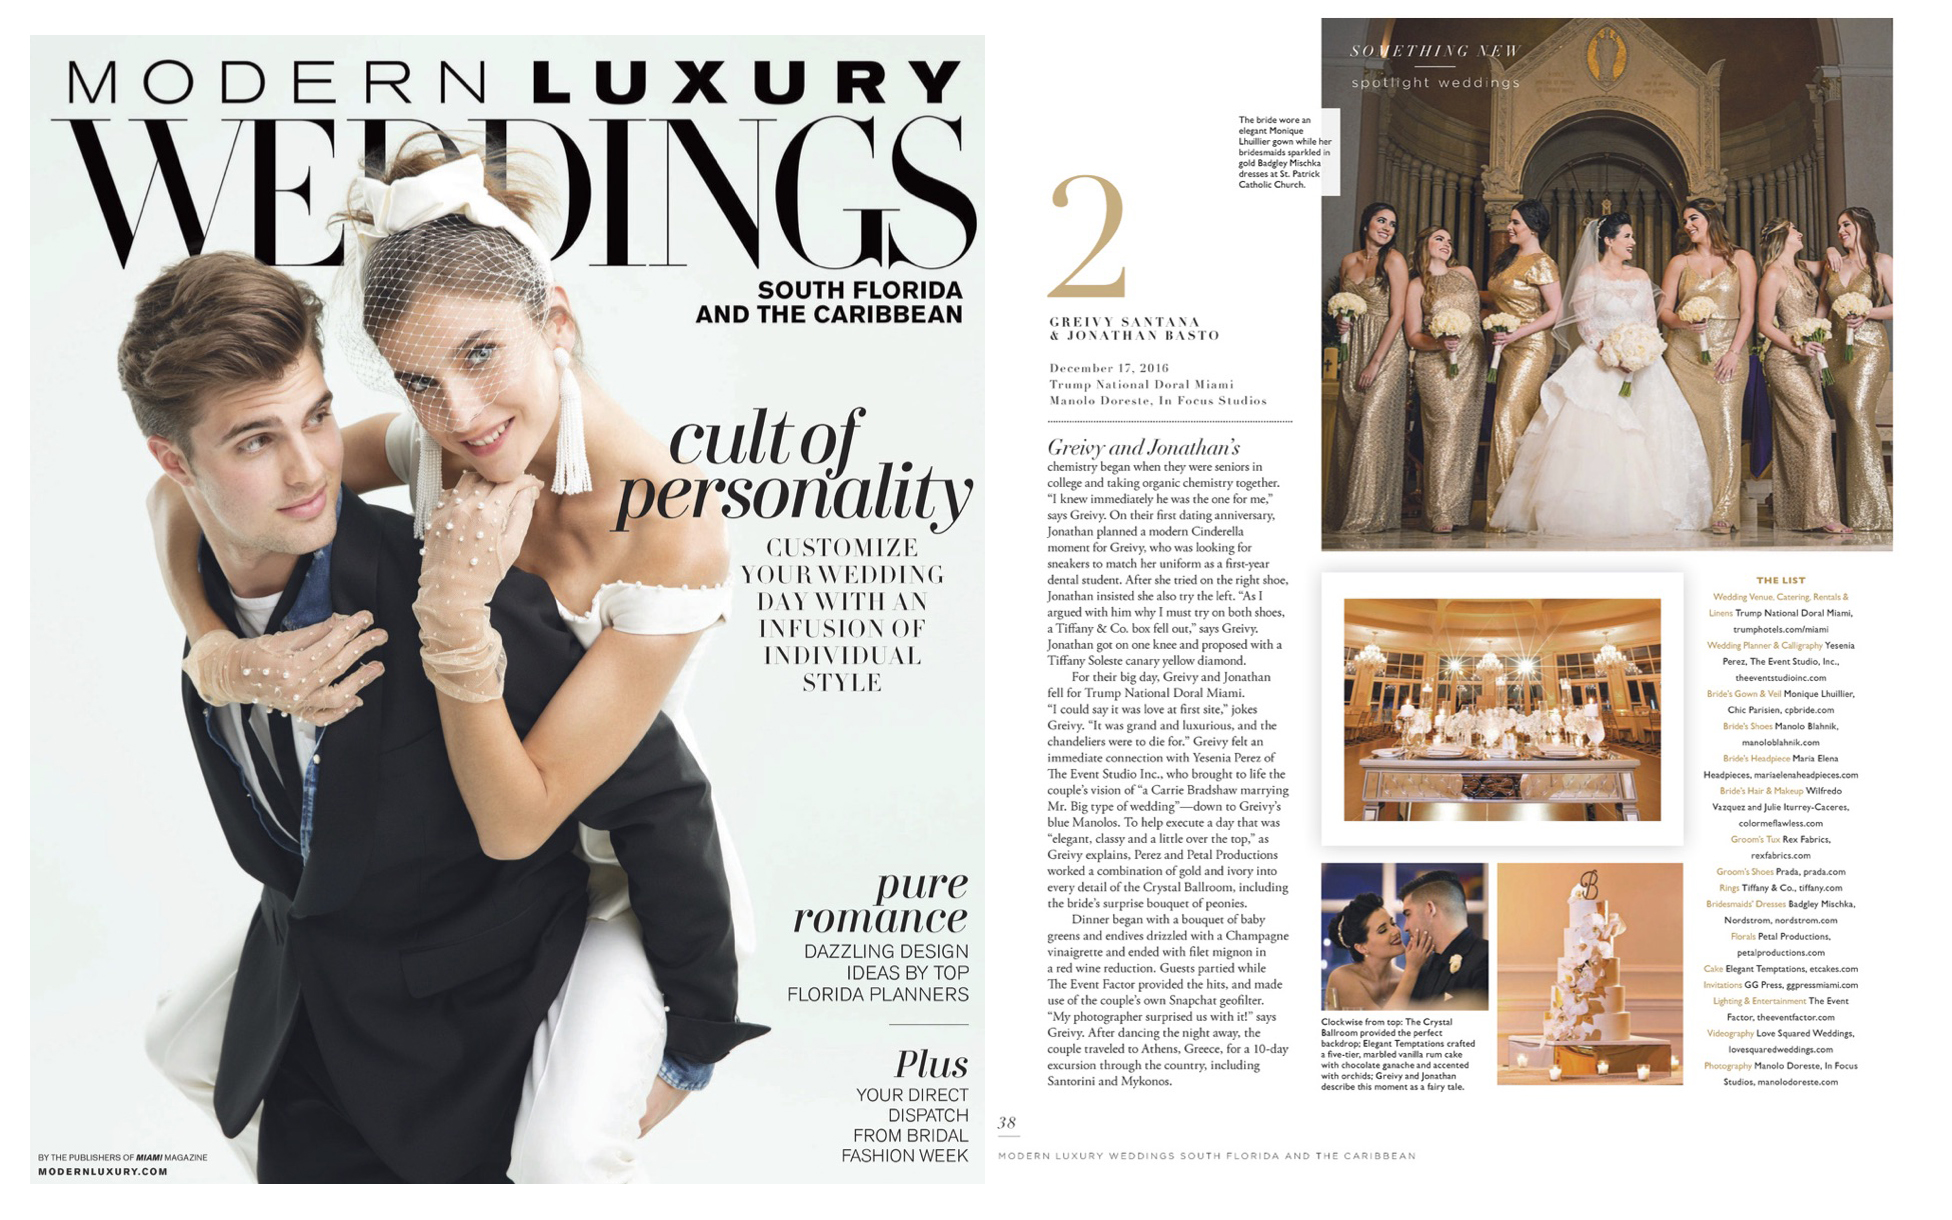 Modern Luxury Weddings South Florida and the Caribbean